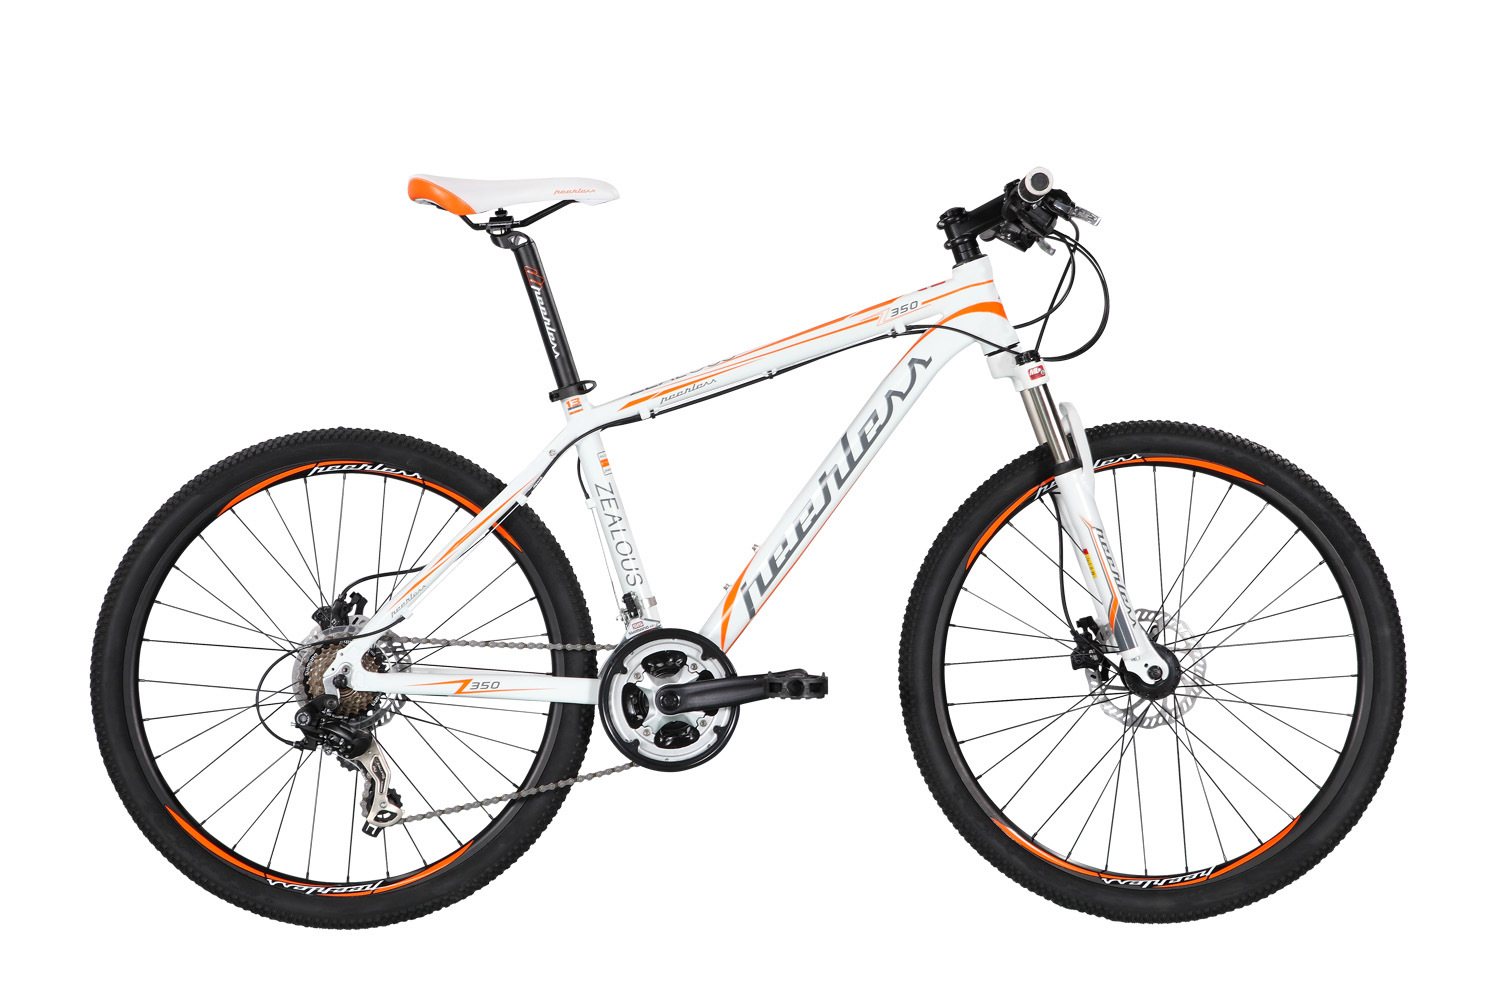 MTB Bicycle, Peerless Mountain Bike (Z350)